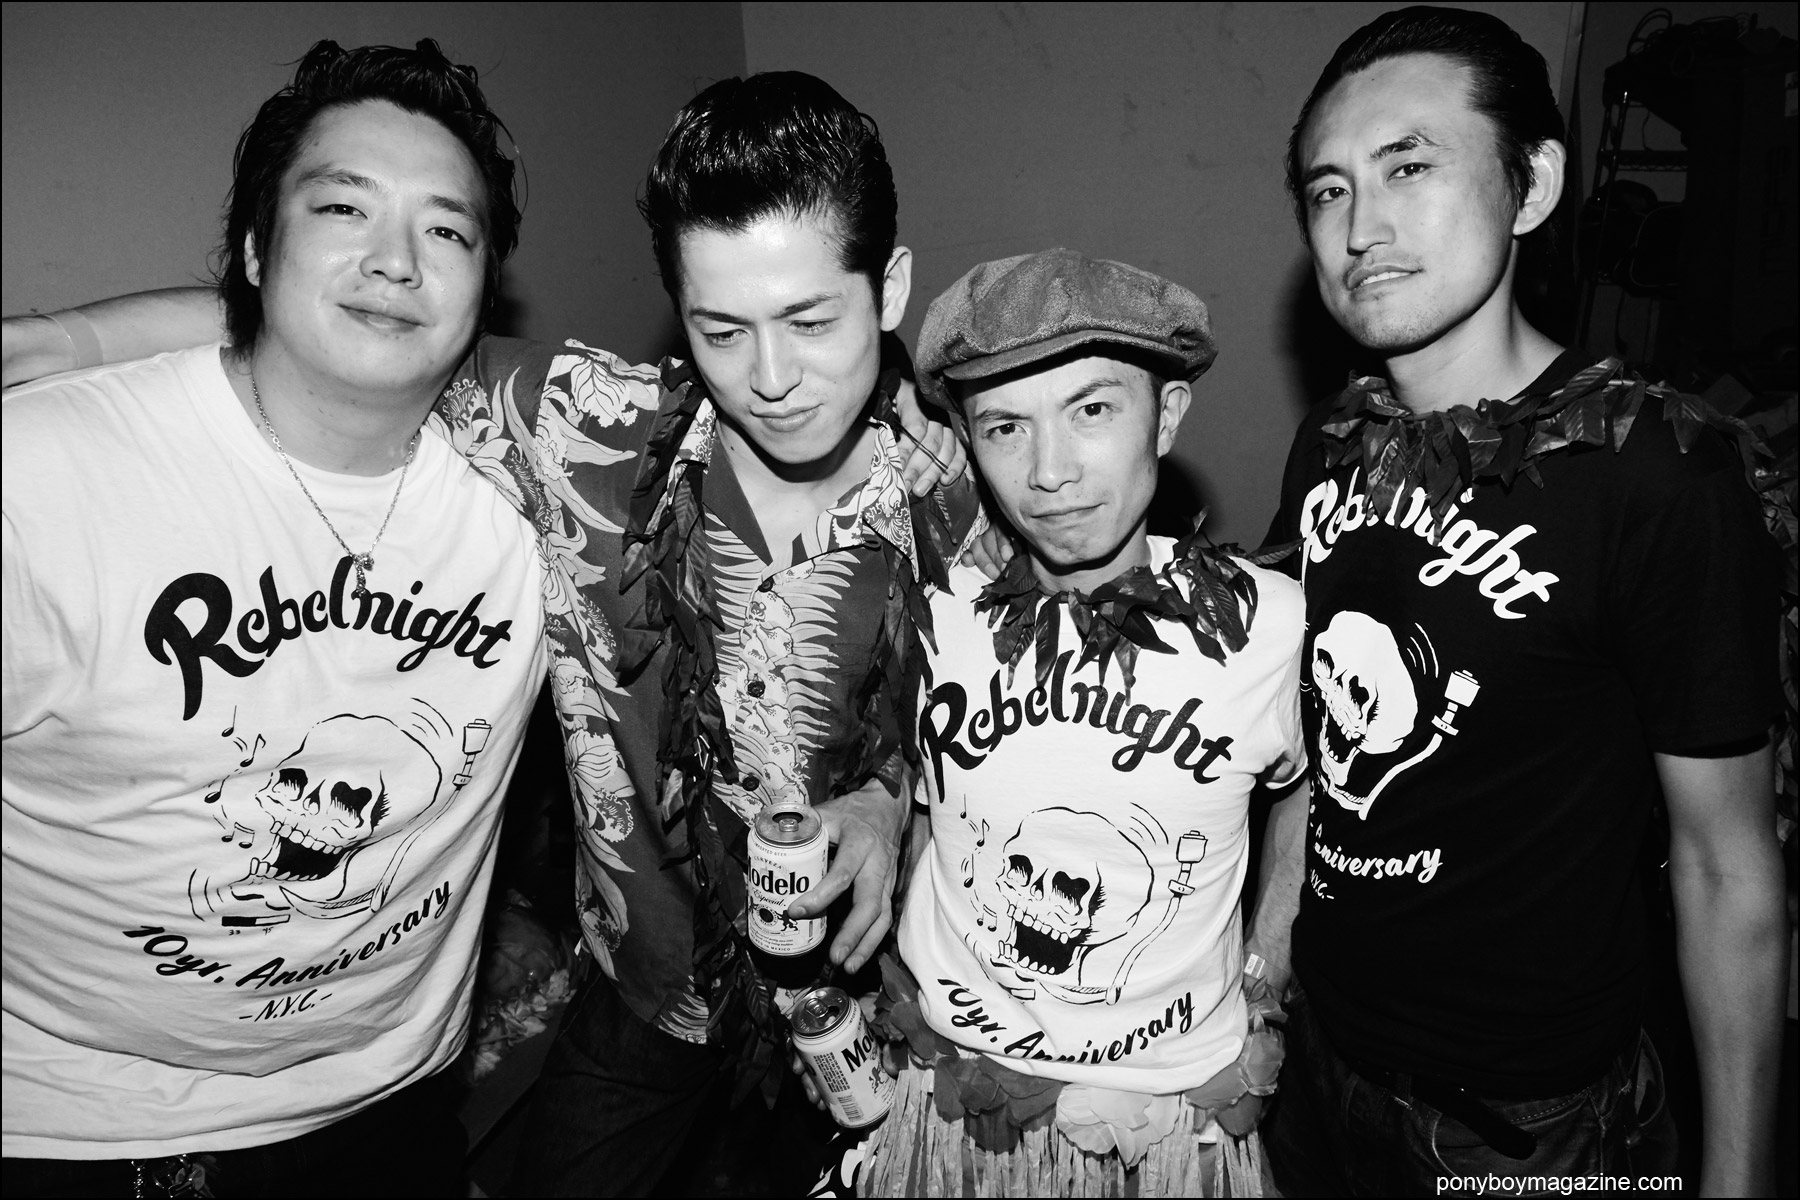 Rebel Night members photographed backstage at Hula Rock Vol 2 weekender. Photograph by Alexander Thompson for Ponyboy magazine NY.